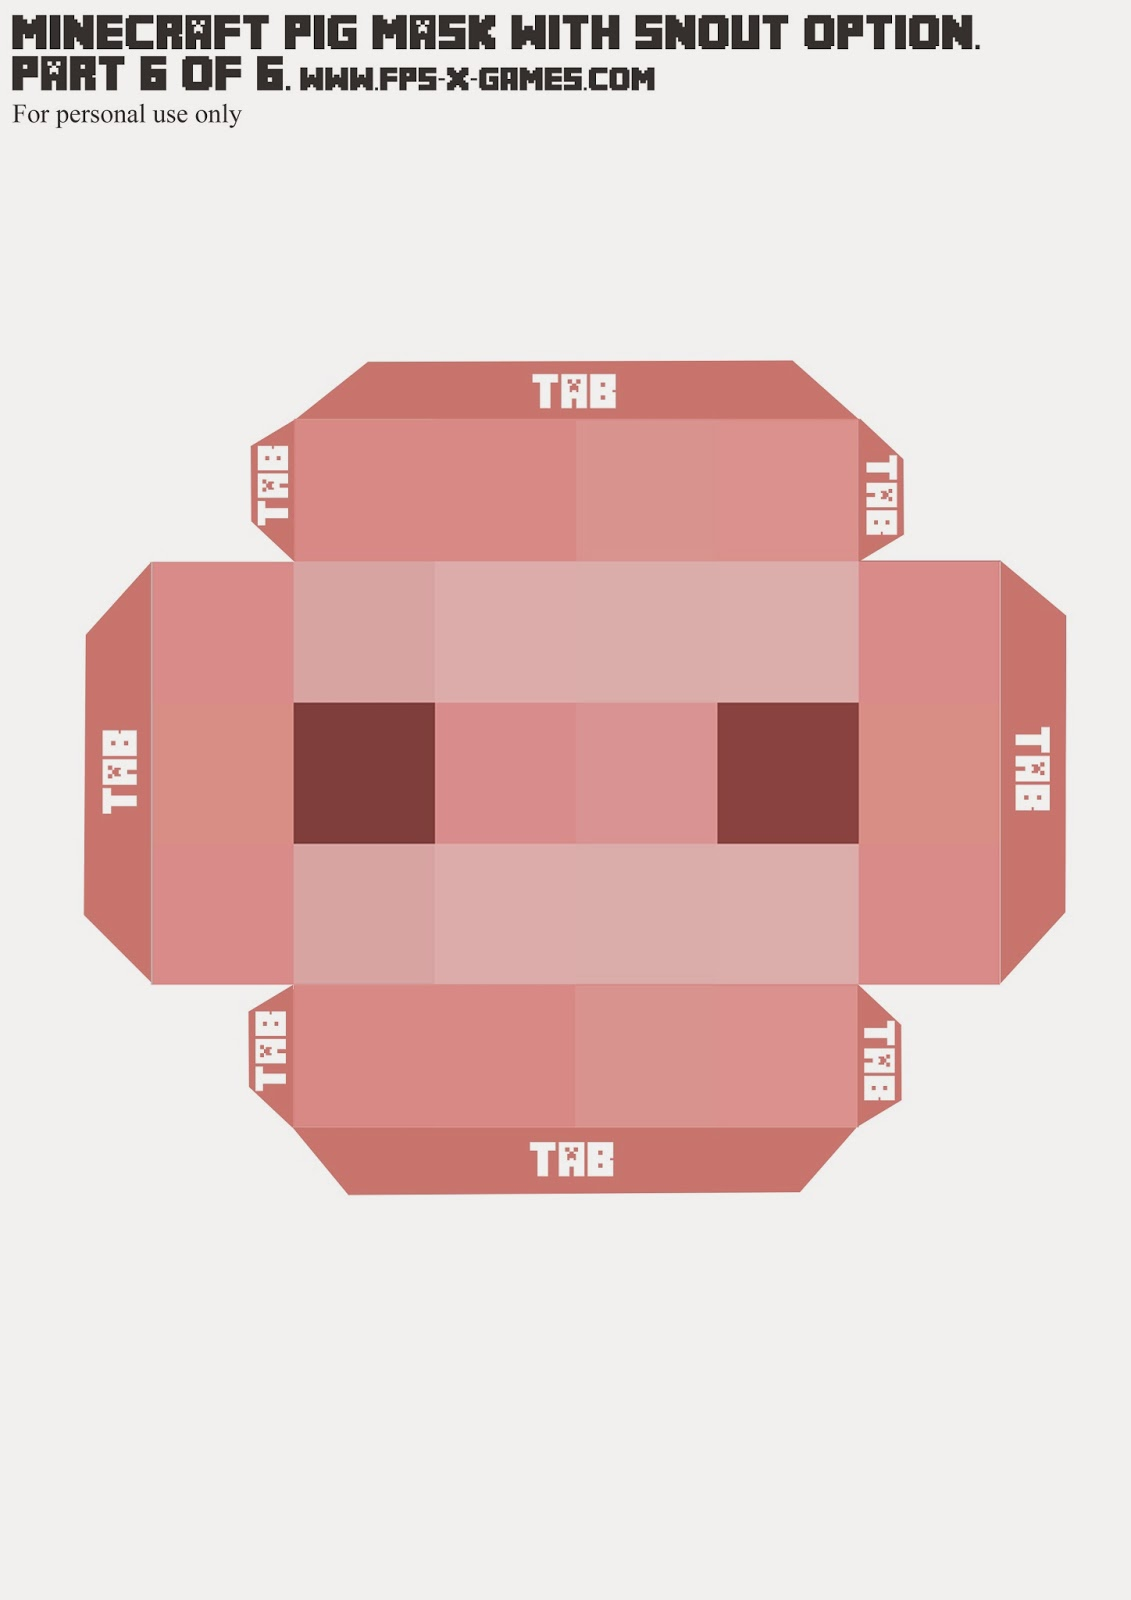 Printable Minecraft pig mask, template 6 of 6